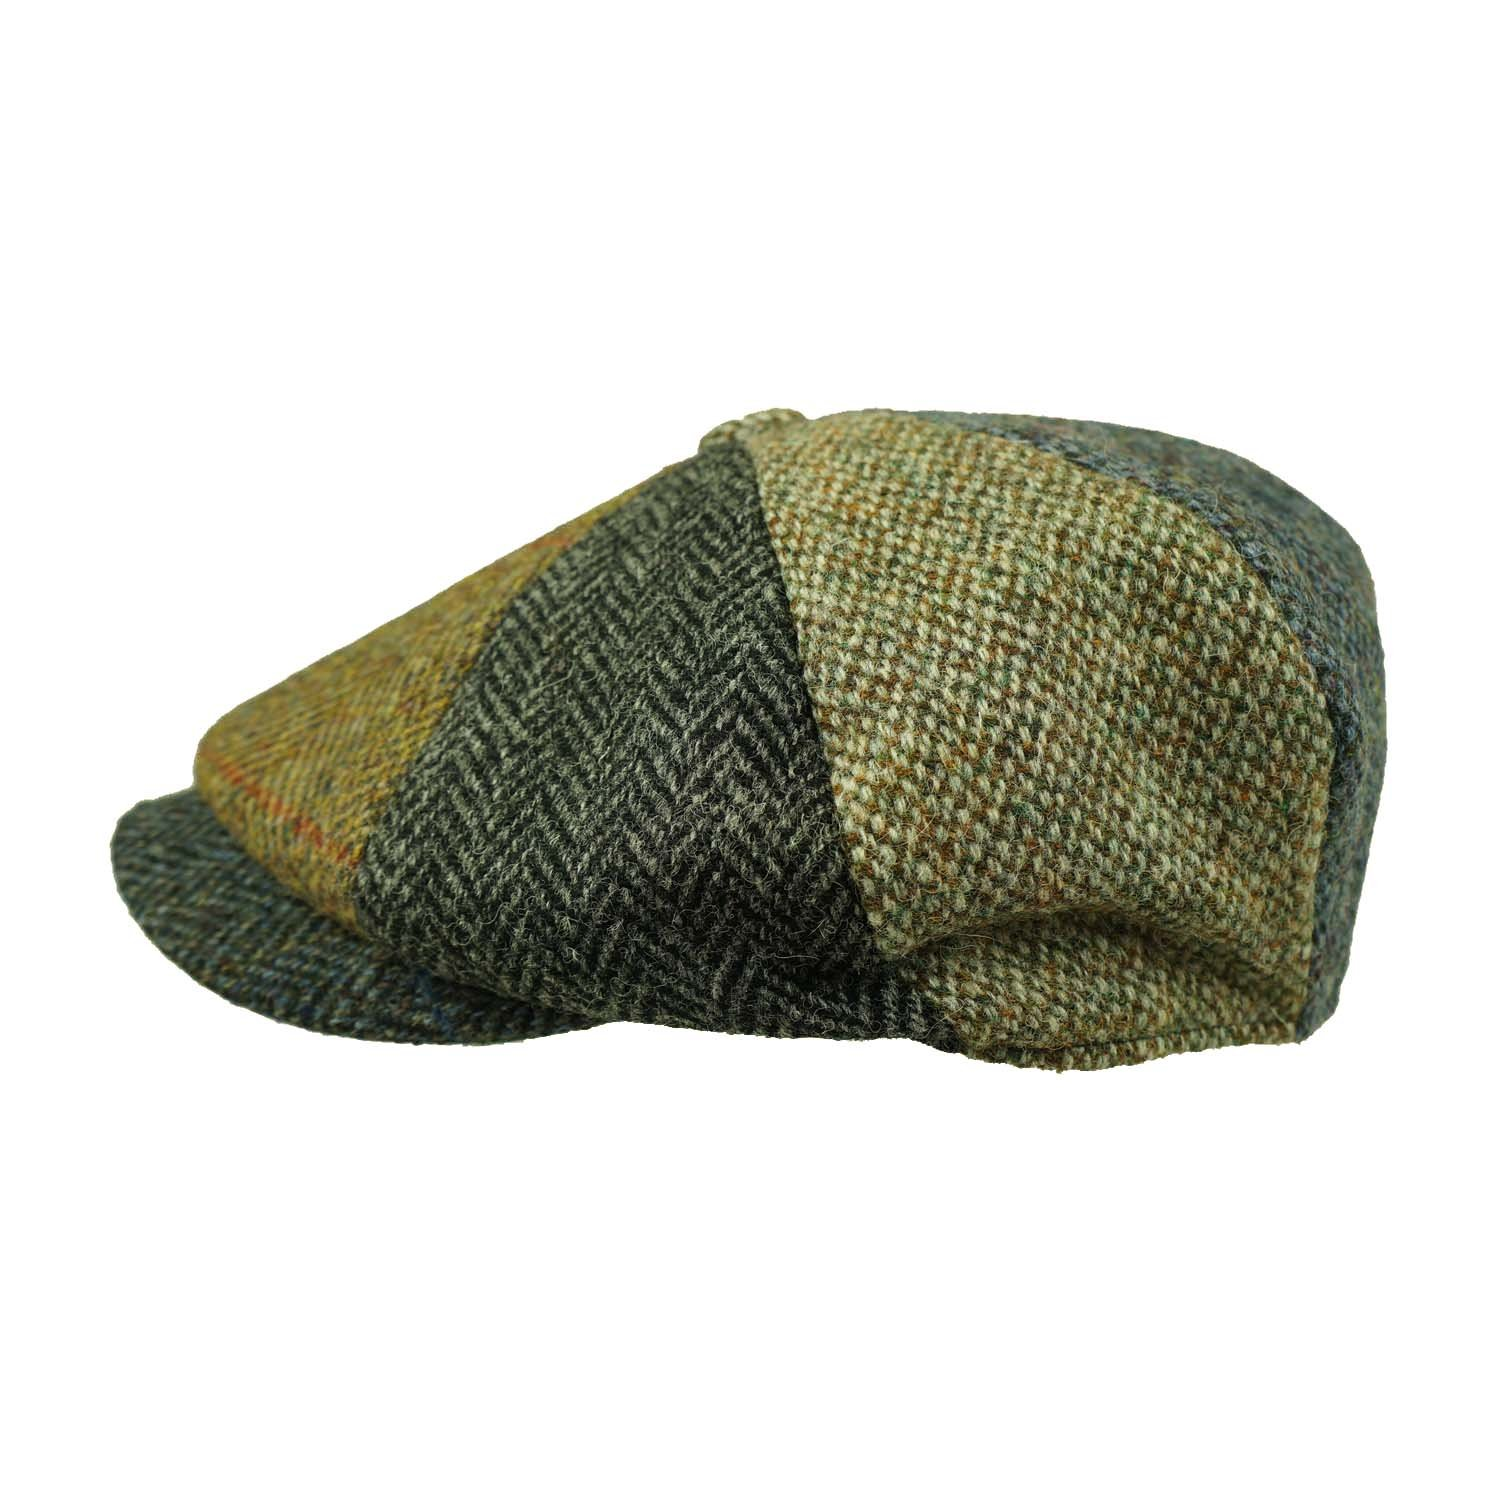 Gorros Failsworth Harris de Tweed, Lewis Newsboy, multicolor ...